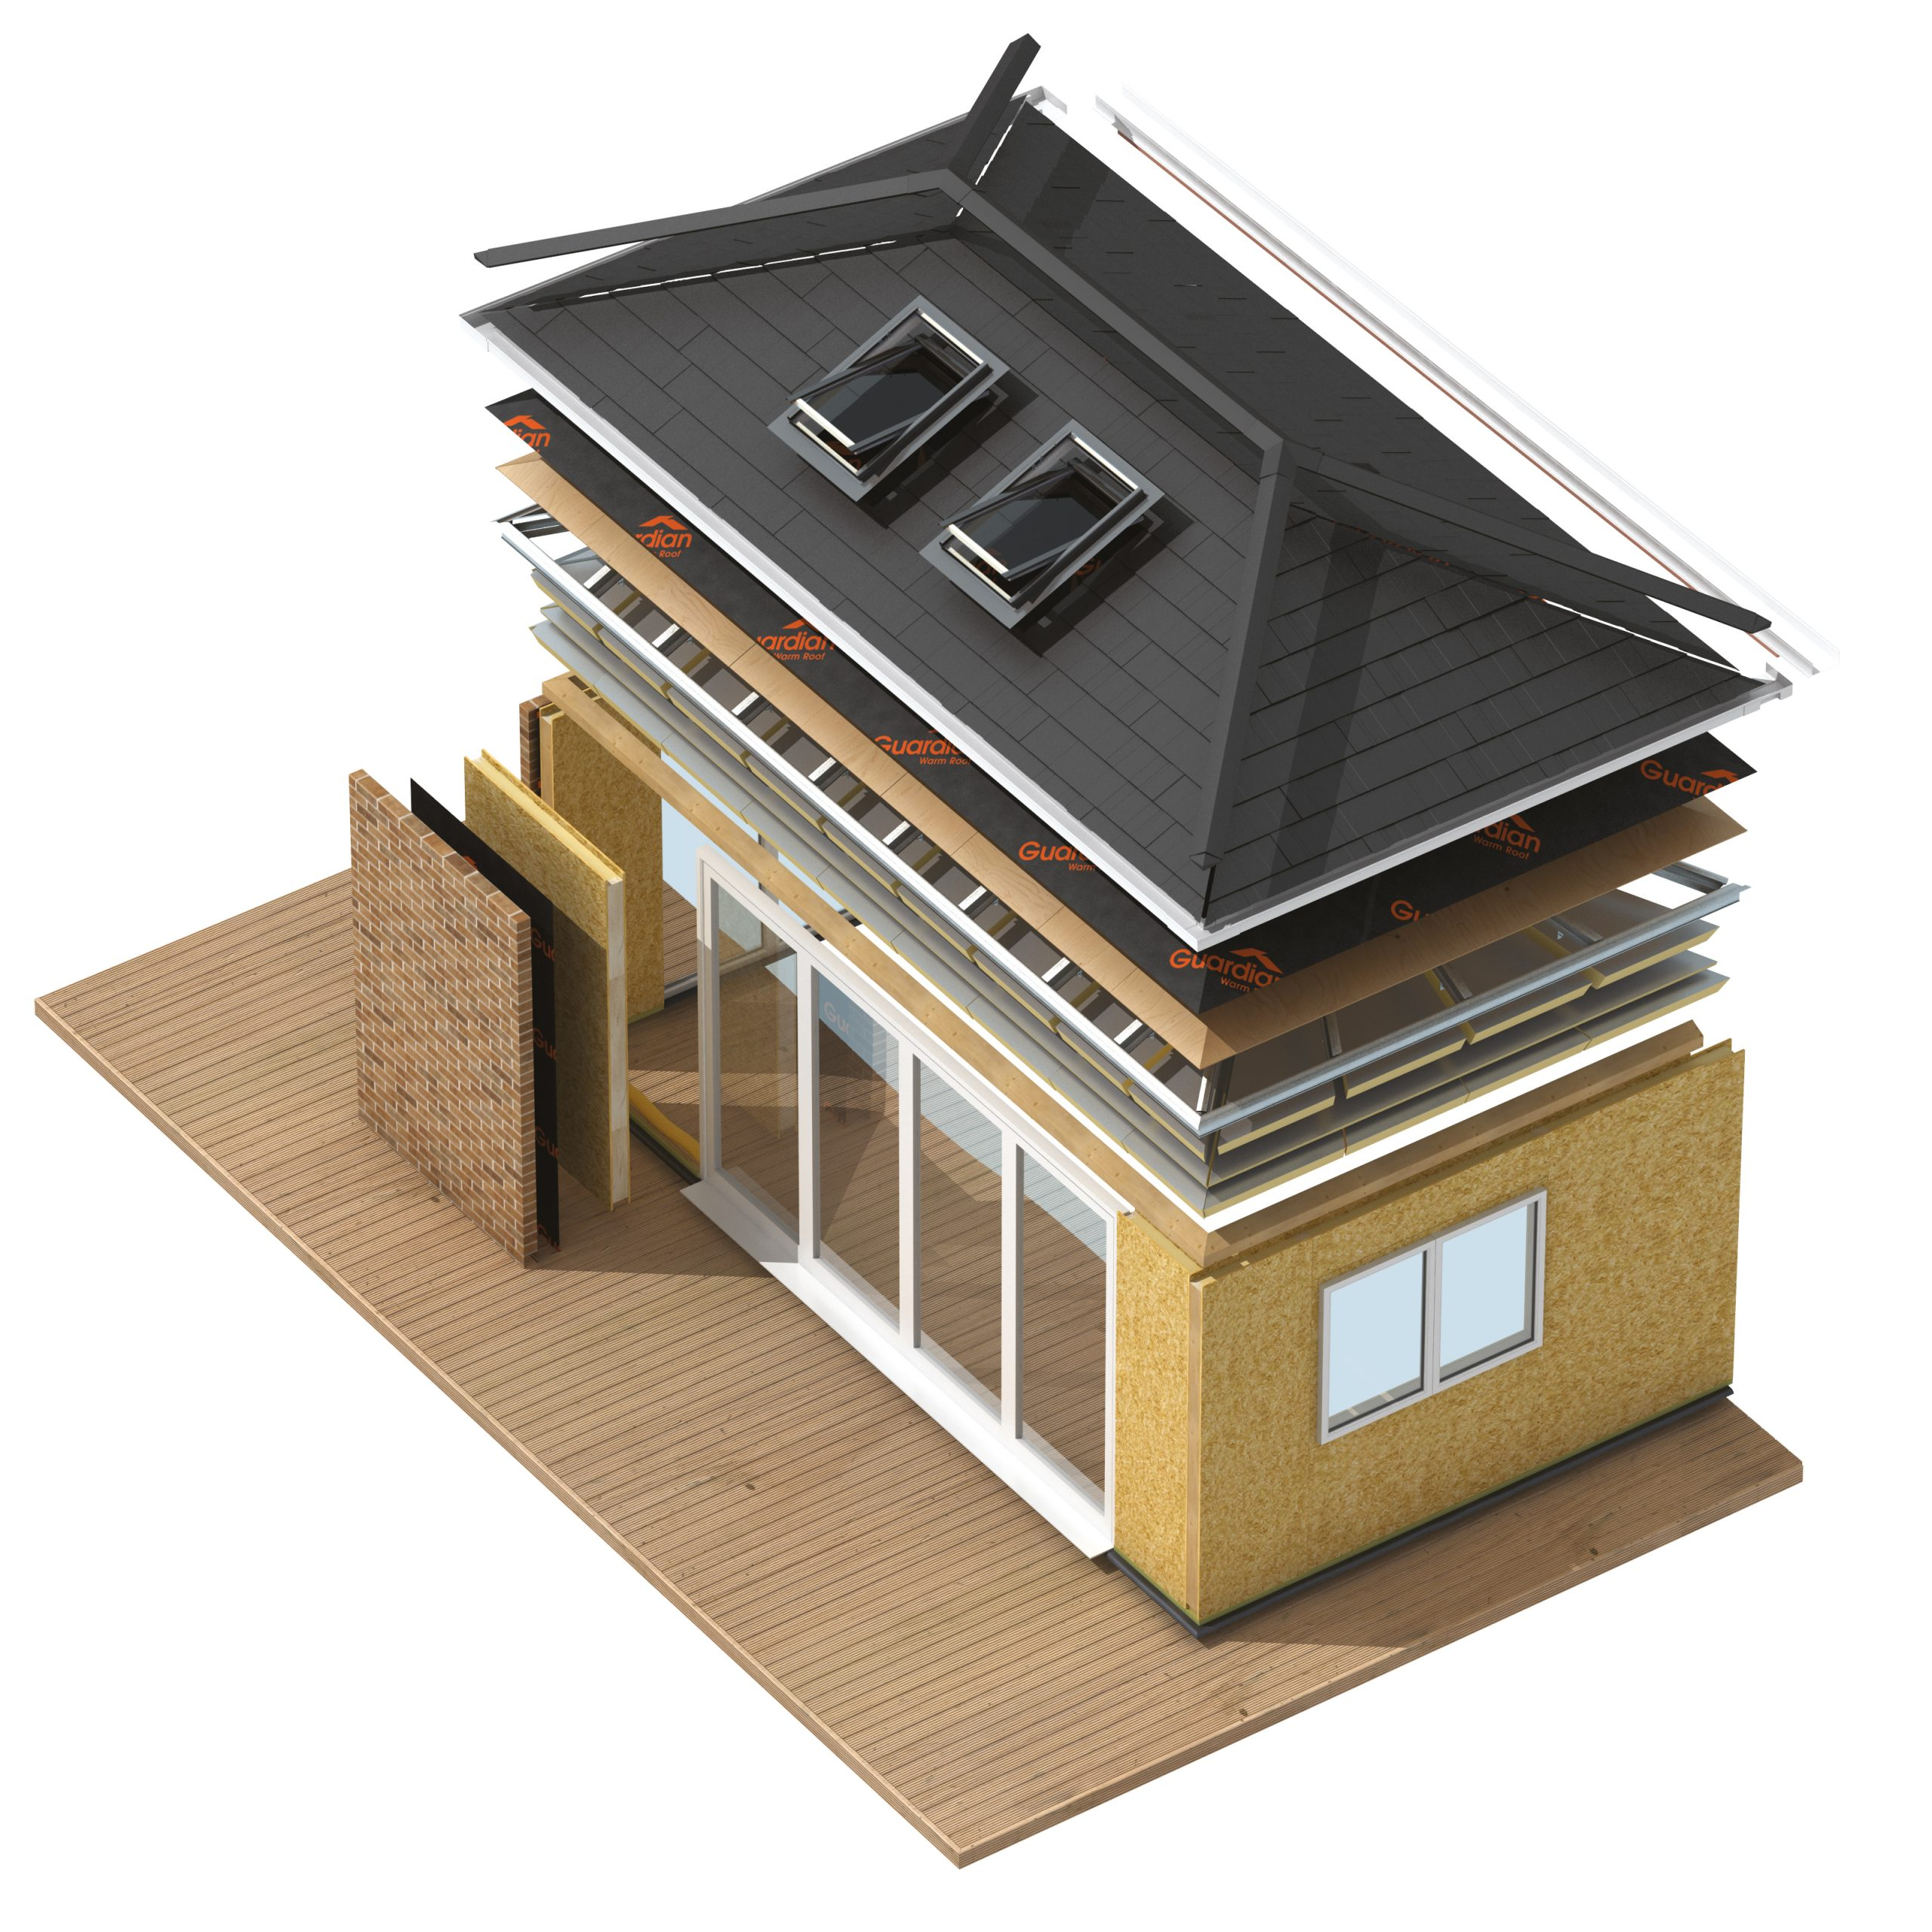 Extend your home with a home extension from Guardian Building Systems